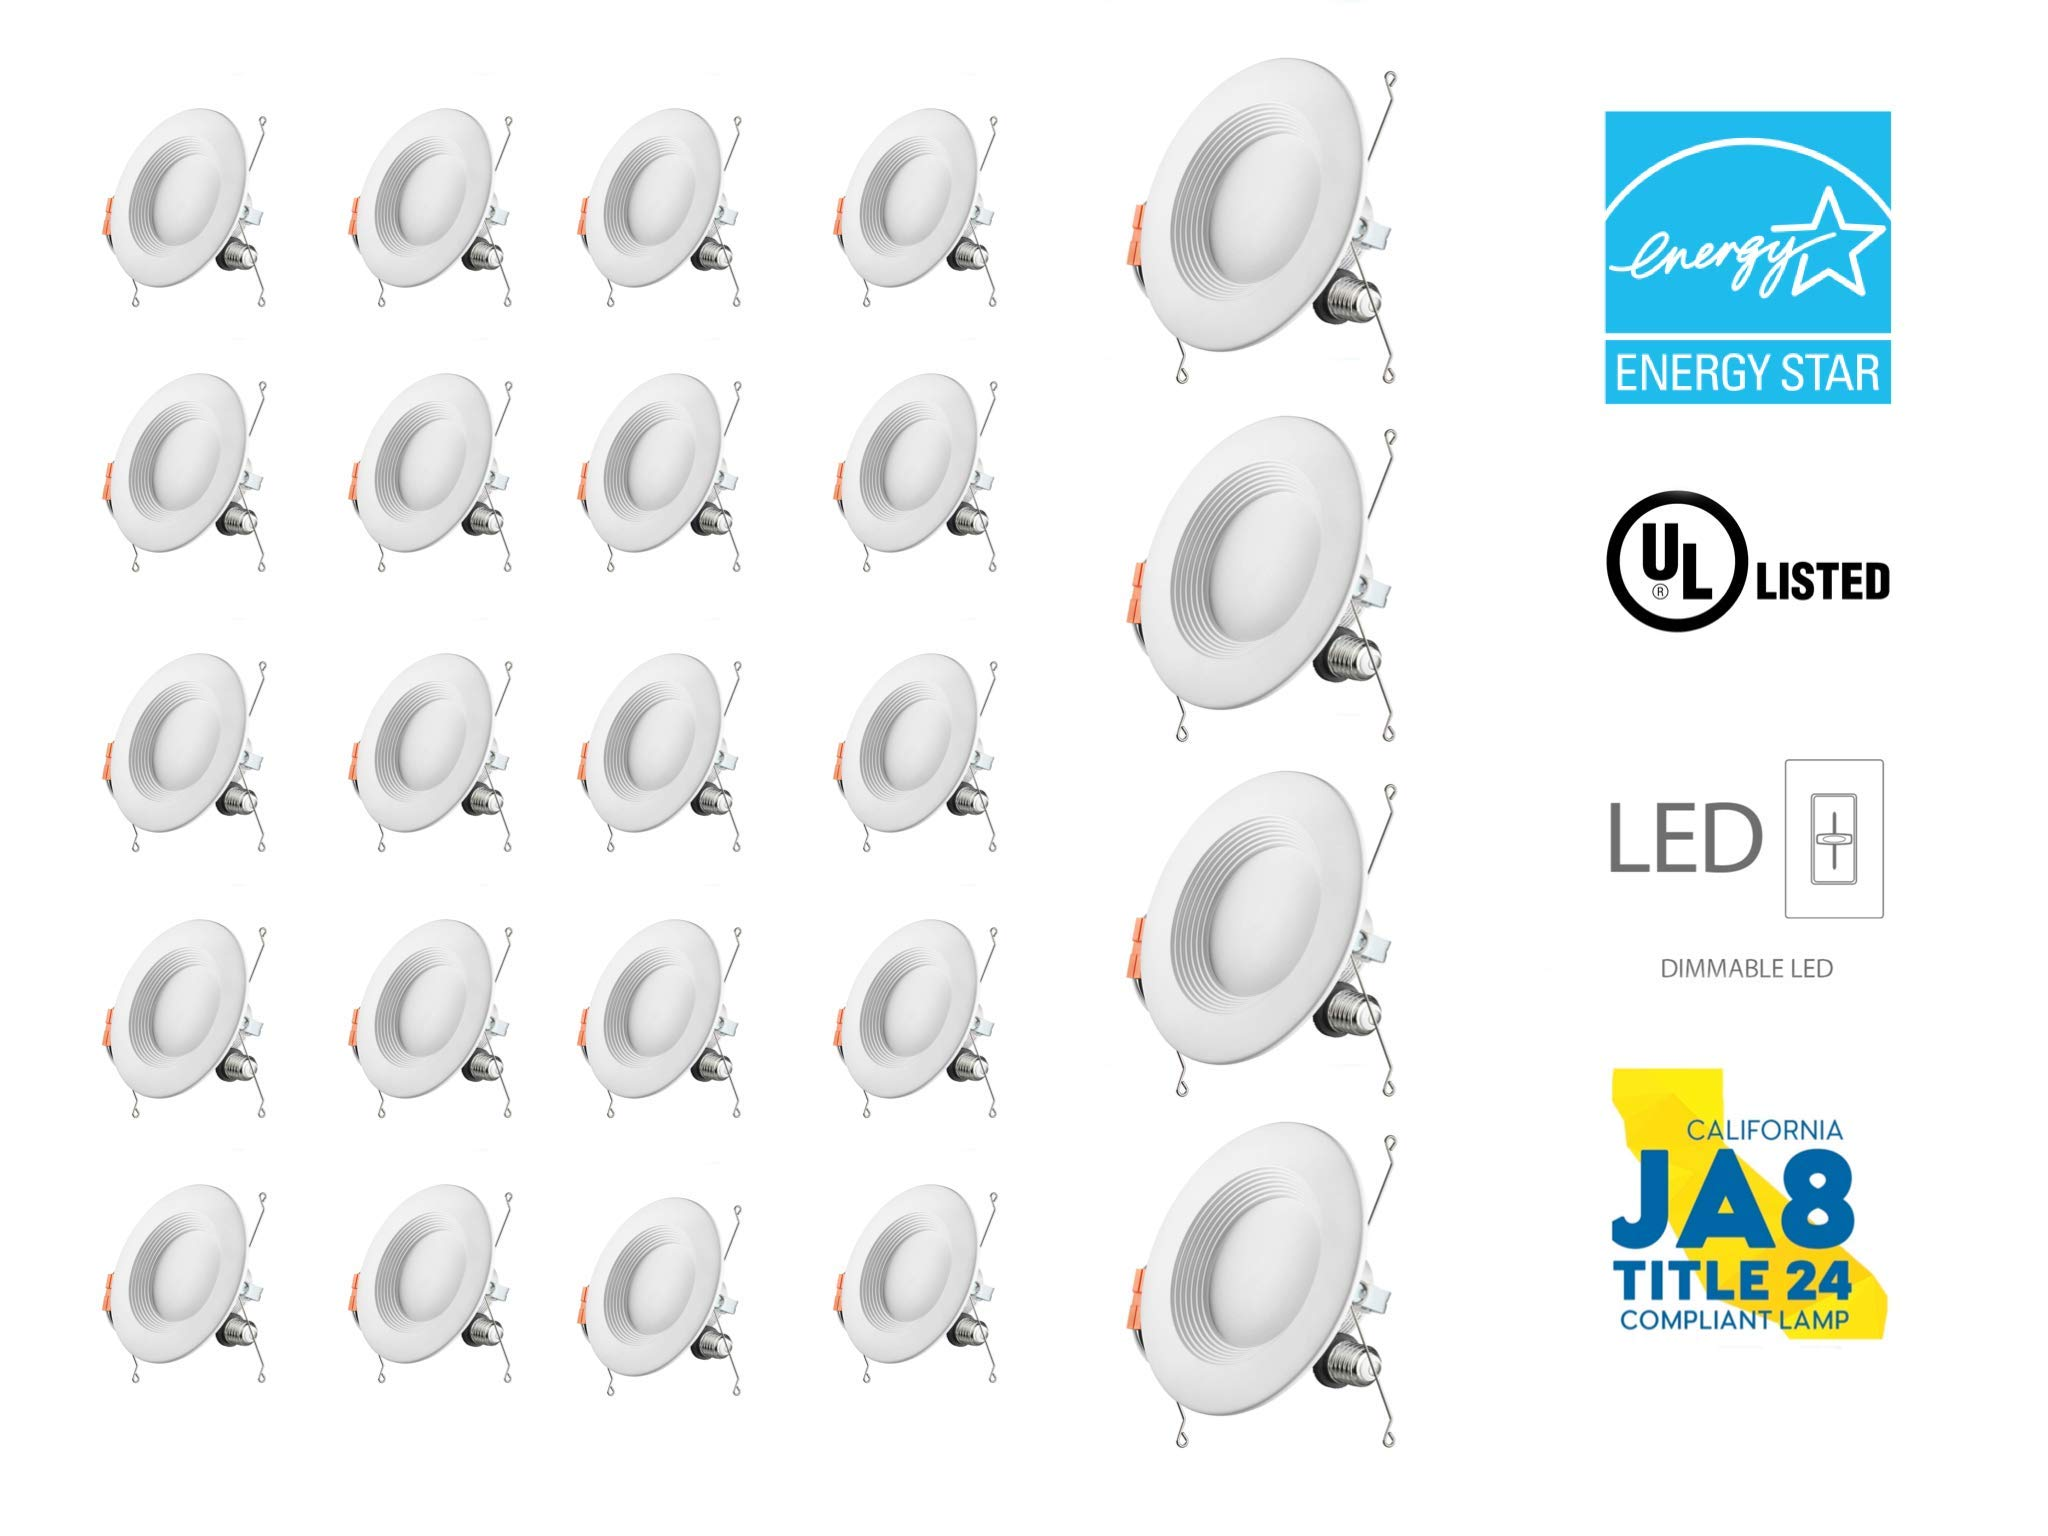 Dynamics 6 Inch Baffle Trim LED Downlight, Dimmable, 15W (120W Equivalent), Retrofit LED Recessed Fixture, CRI90, Energy Star Ceiling Light - Great for Bathroom, Kitchen, Office (5000K, 24 Pack)